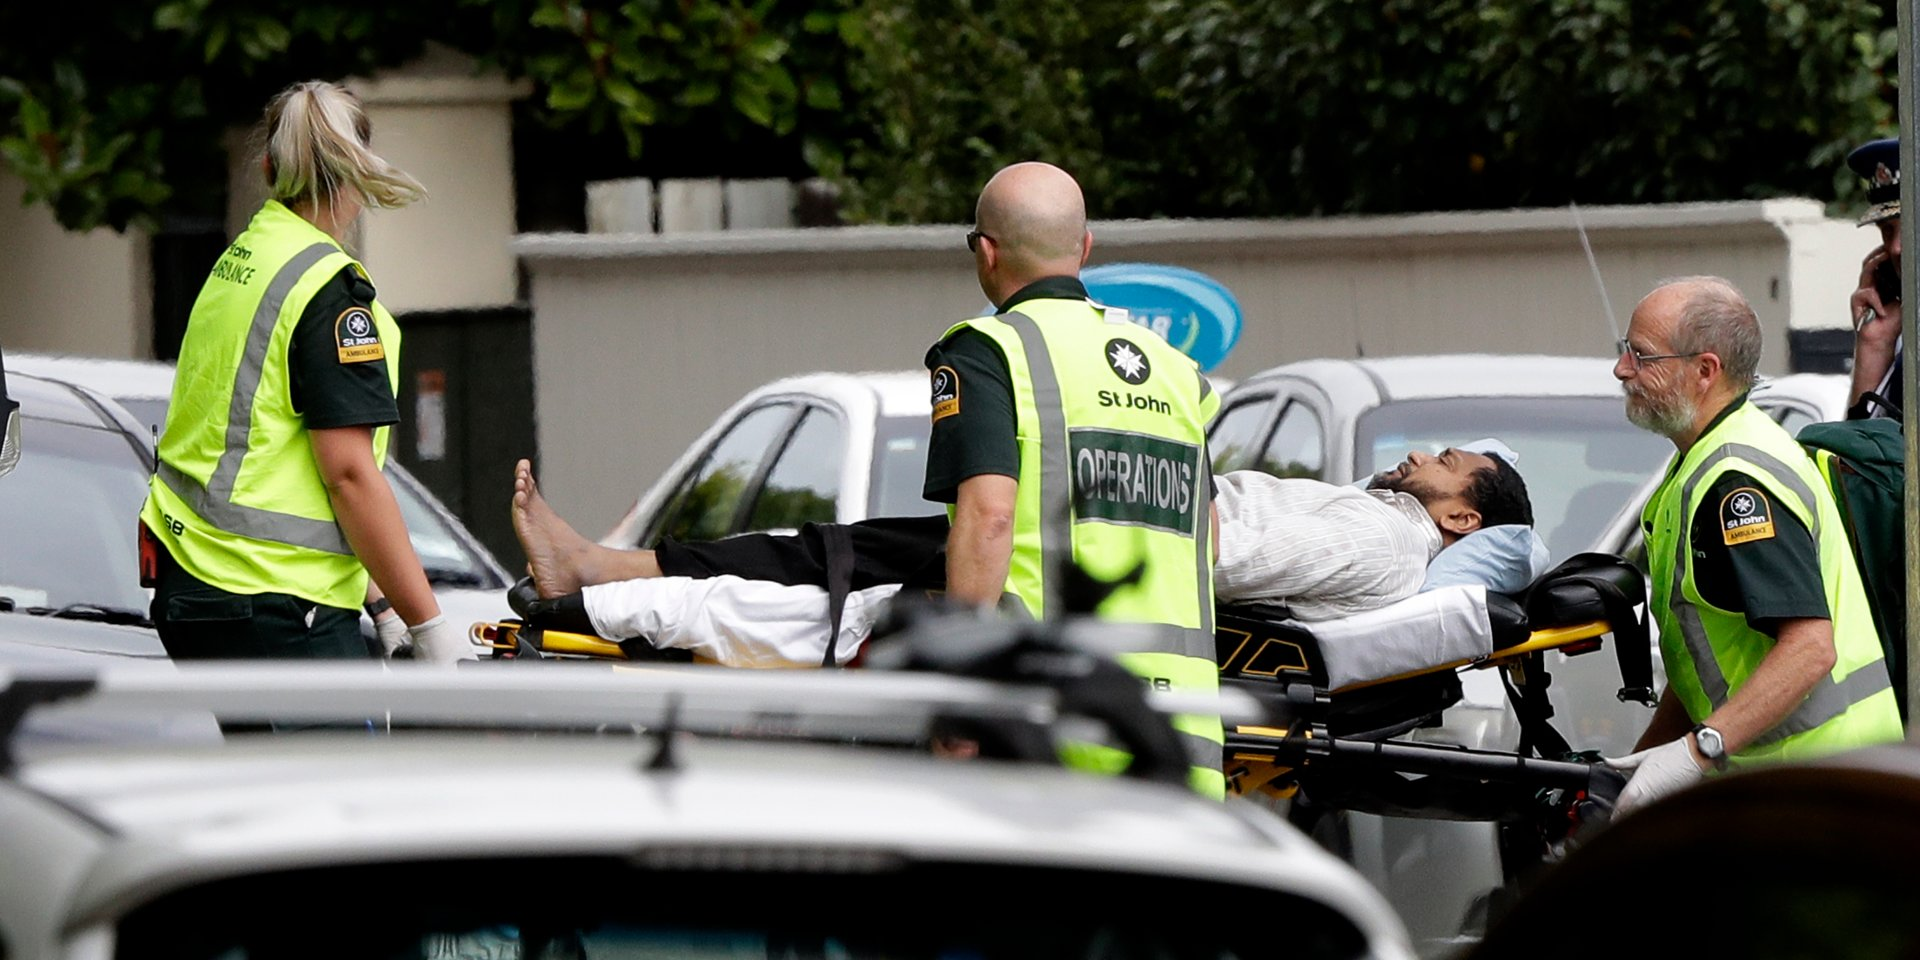 New Zealand Mosque Shooter Livestreamed Killings On Facebook: PewDiePie Provides Statement Following New Zealand Shooting